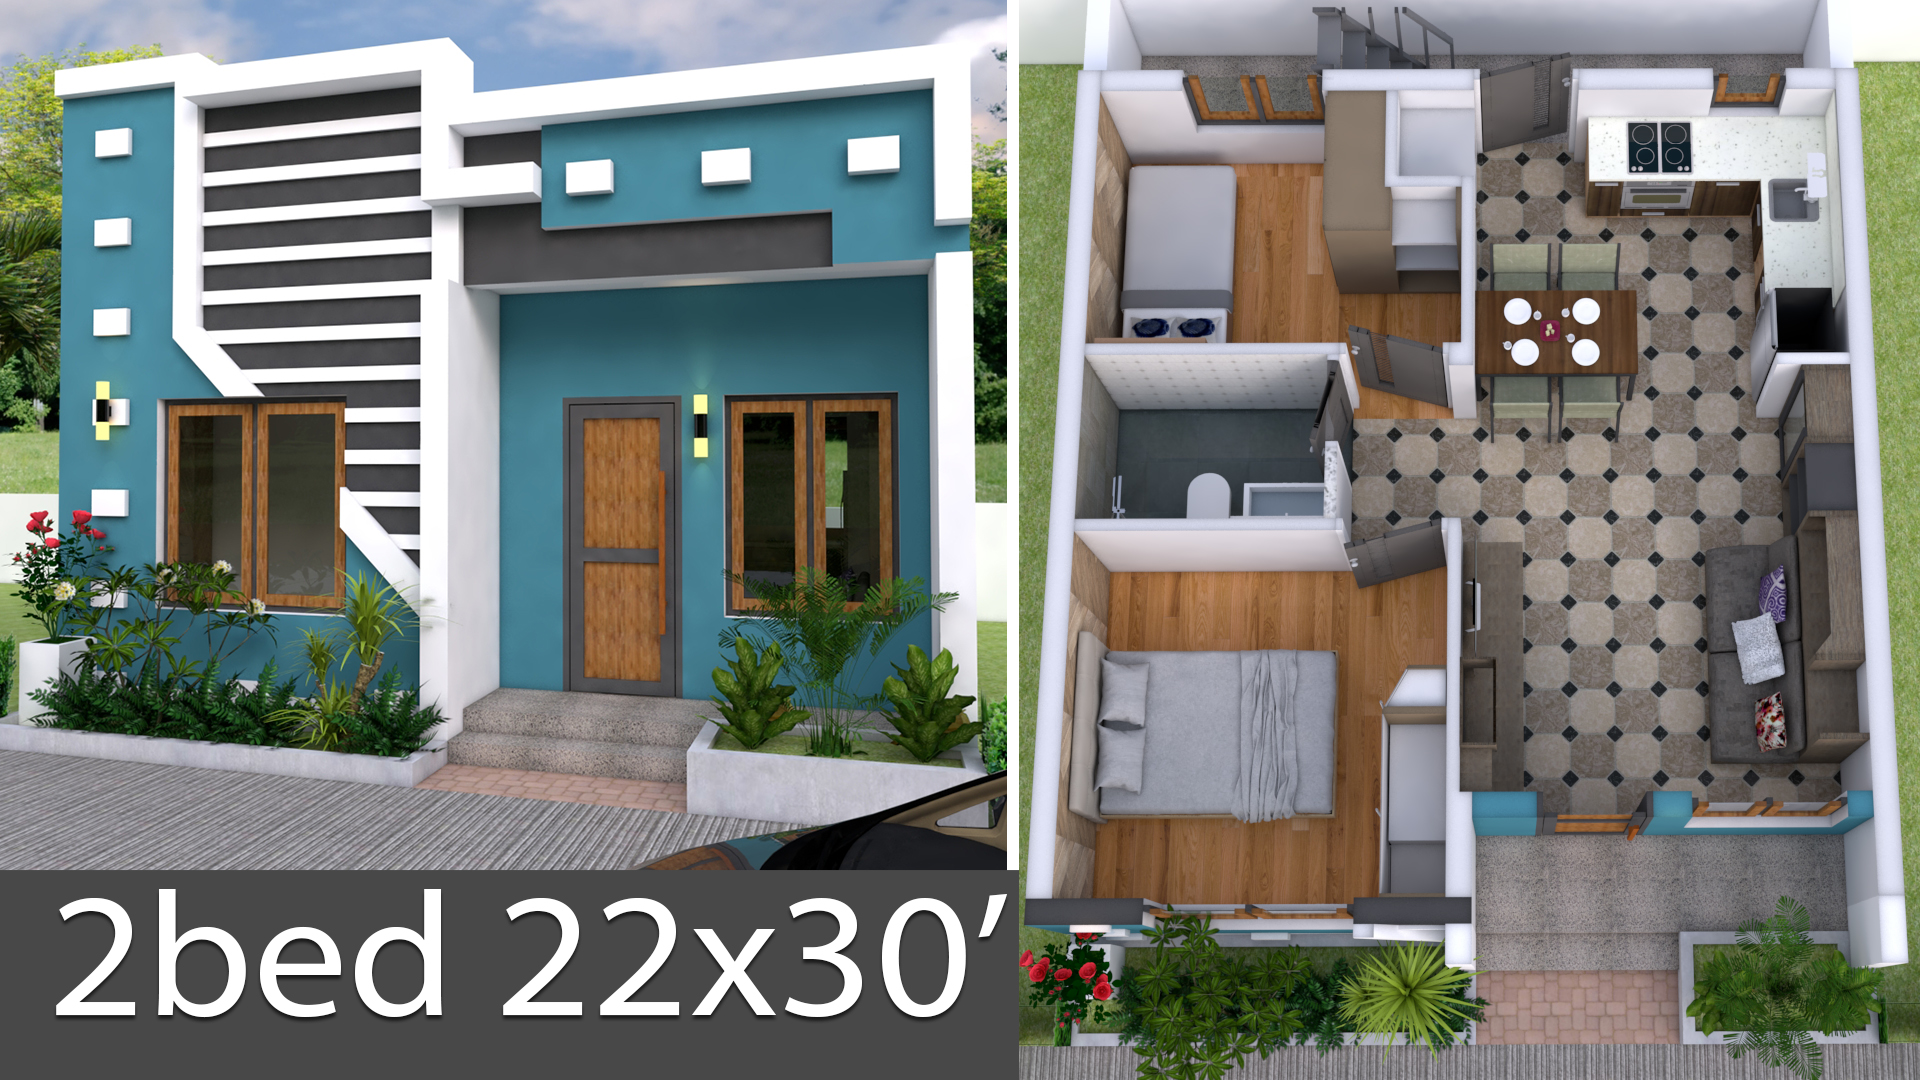 3d Simple House Plan With Two Bedrooms 22x30 Feet Samphoas Plan